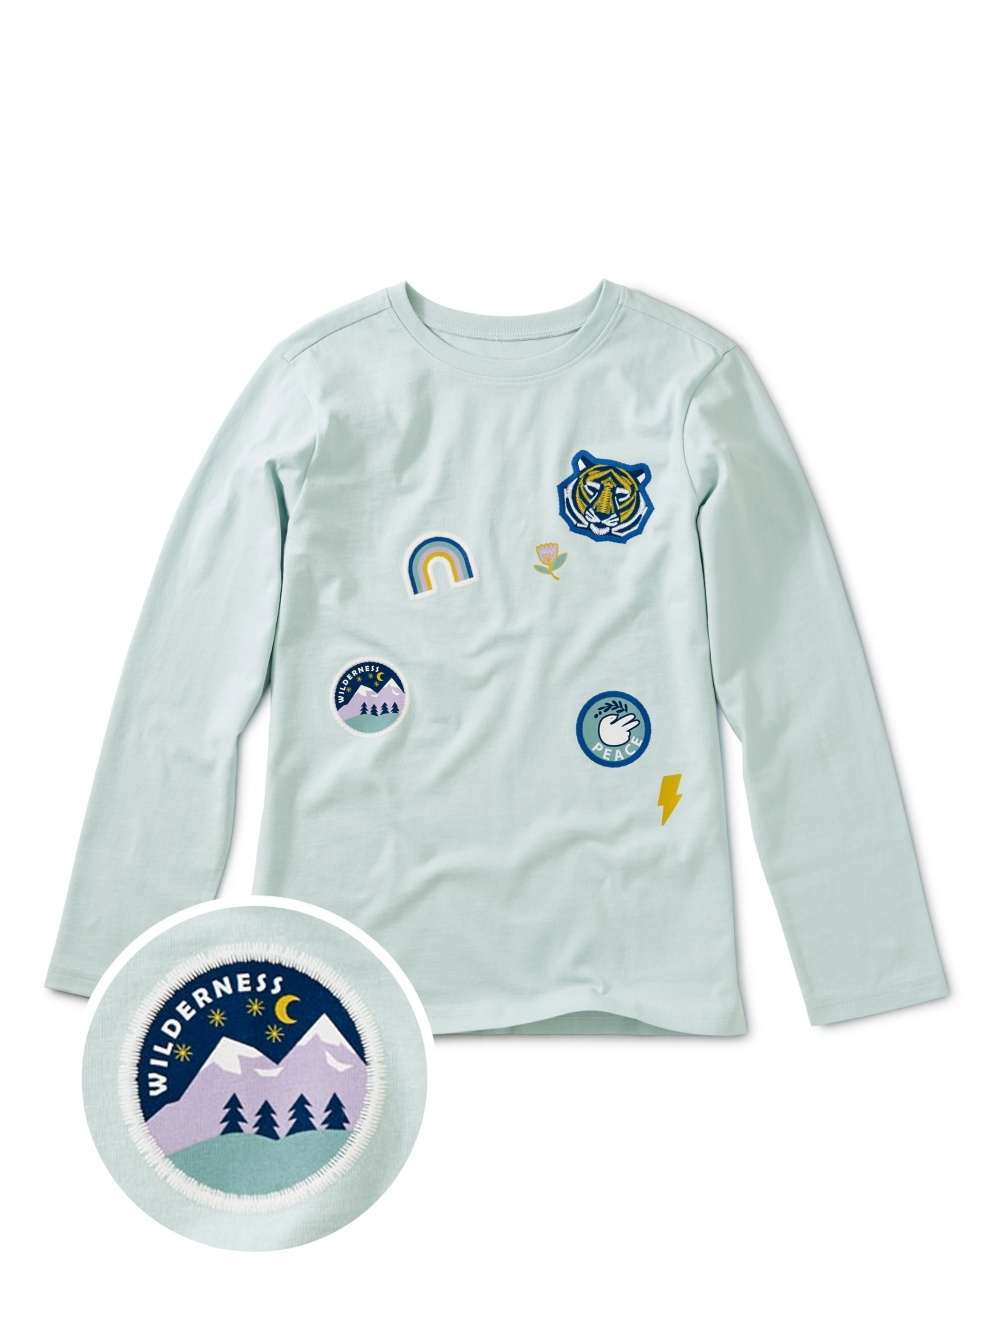 Patch It Up Graphic Tee